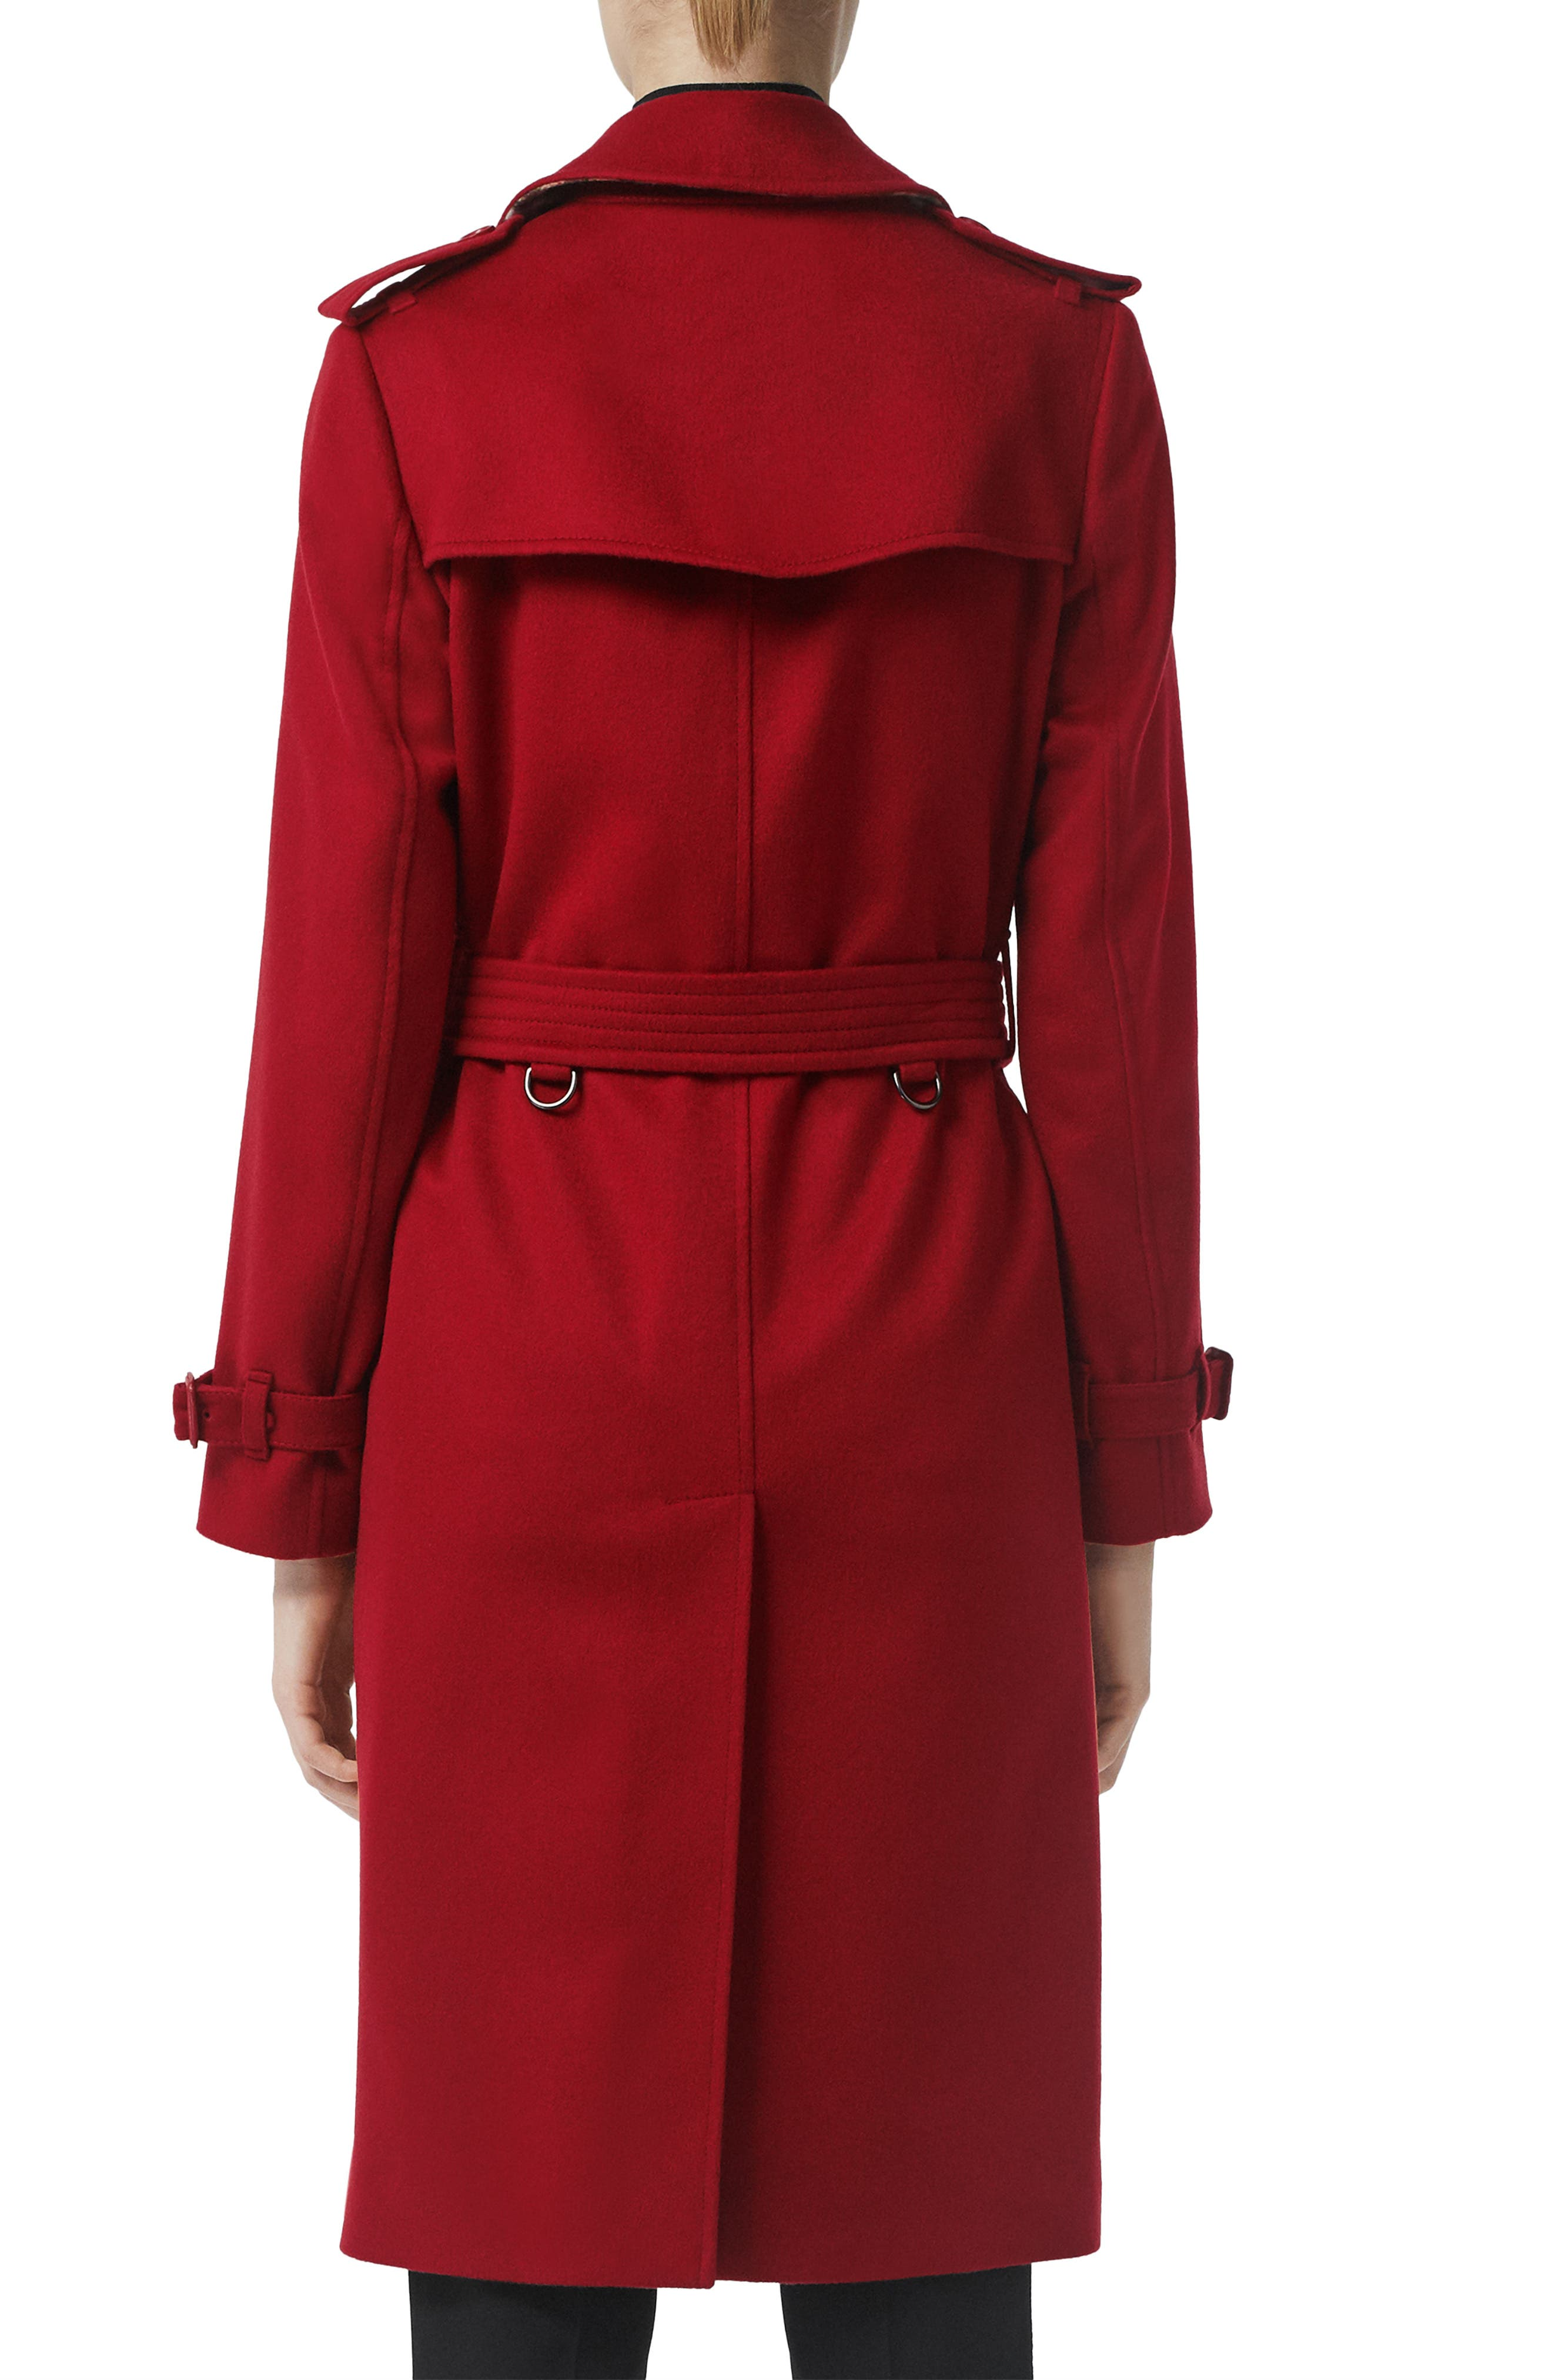 BURBERRY, Kensington Cashmere Trench Coat, Alternate thumbnail 2, color, PARADE RED